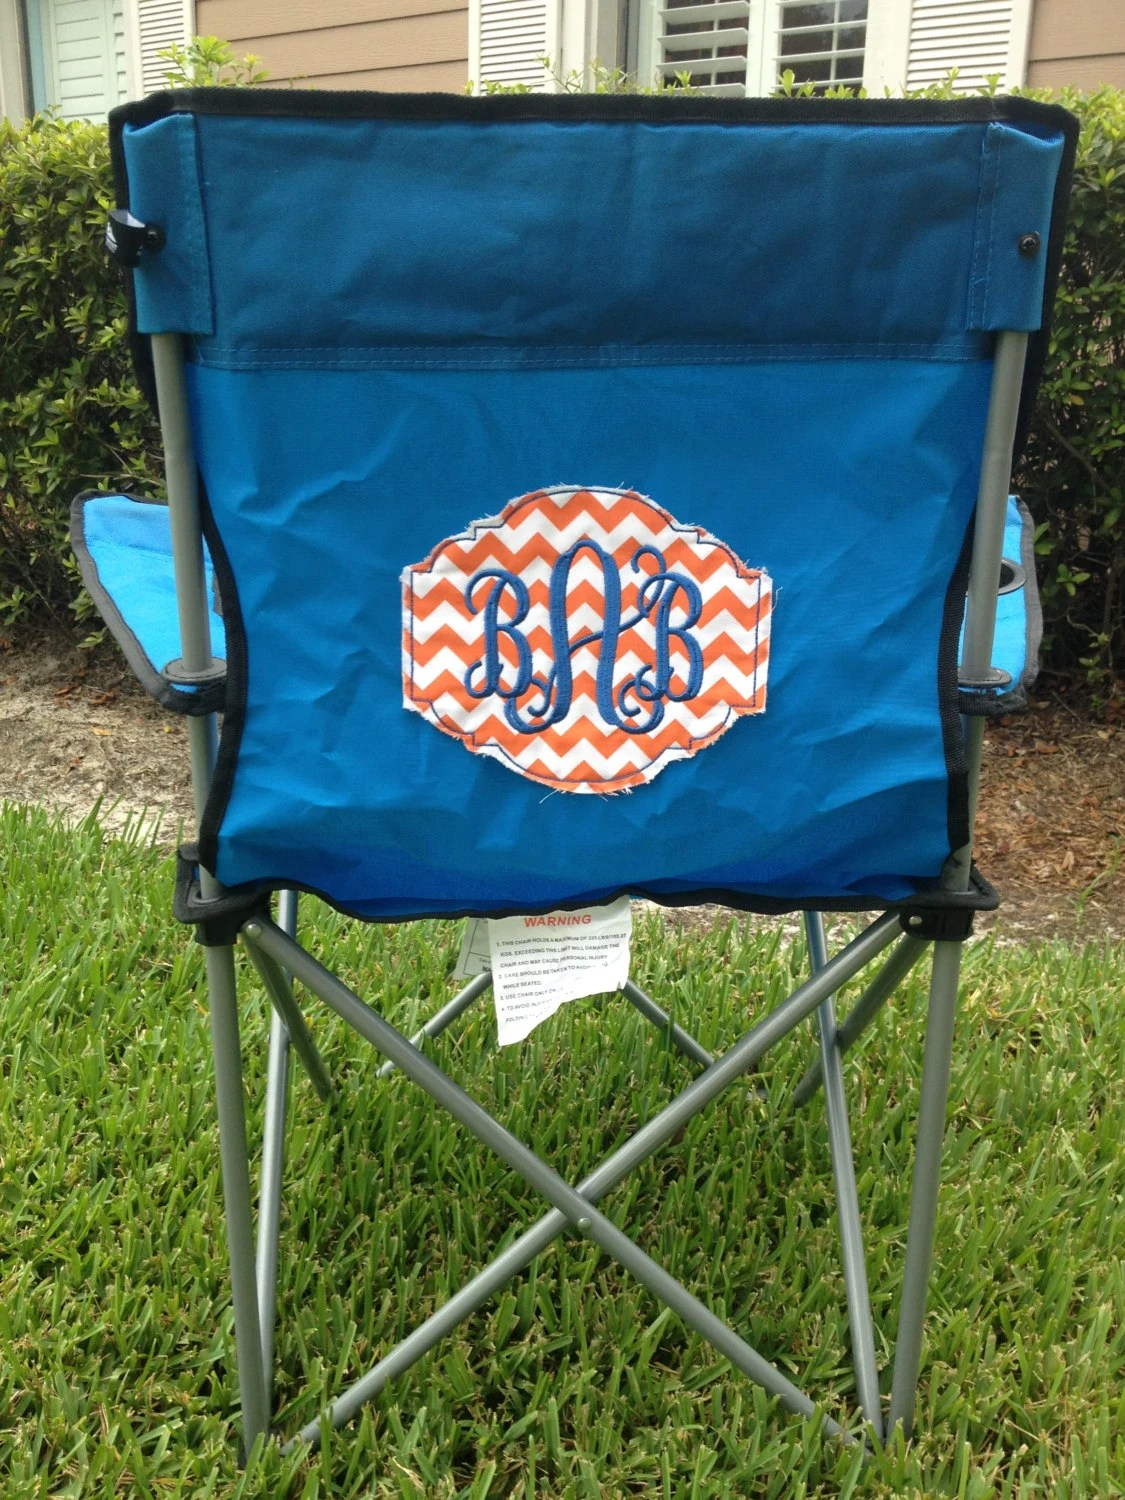 Tailgate Chairs Diy Tailgate Chair Patch Megan By Rileyreigh On Etsy